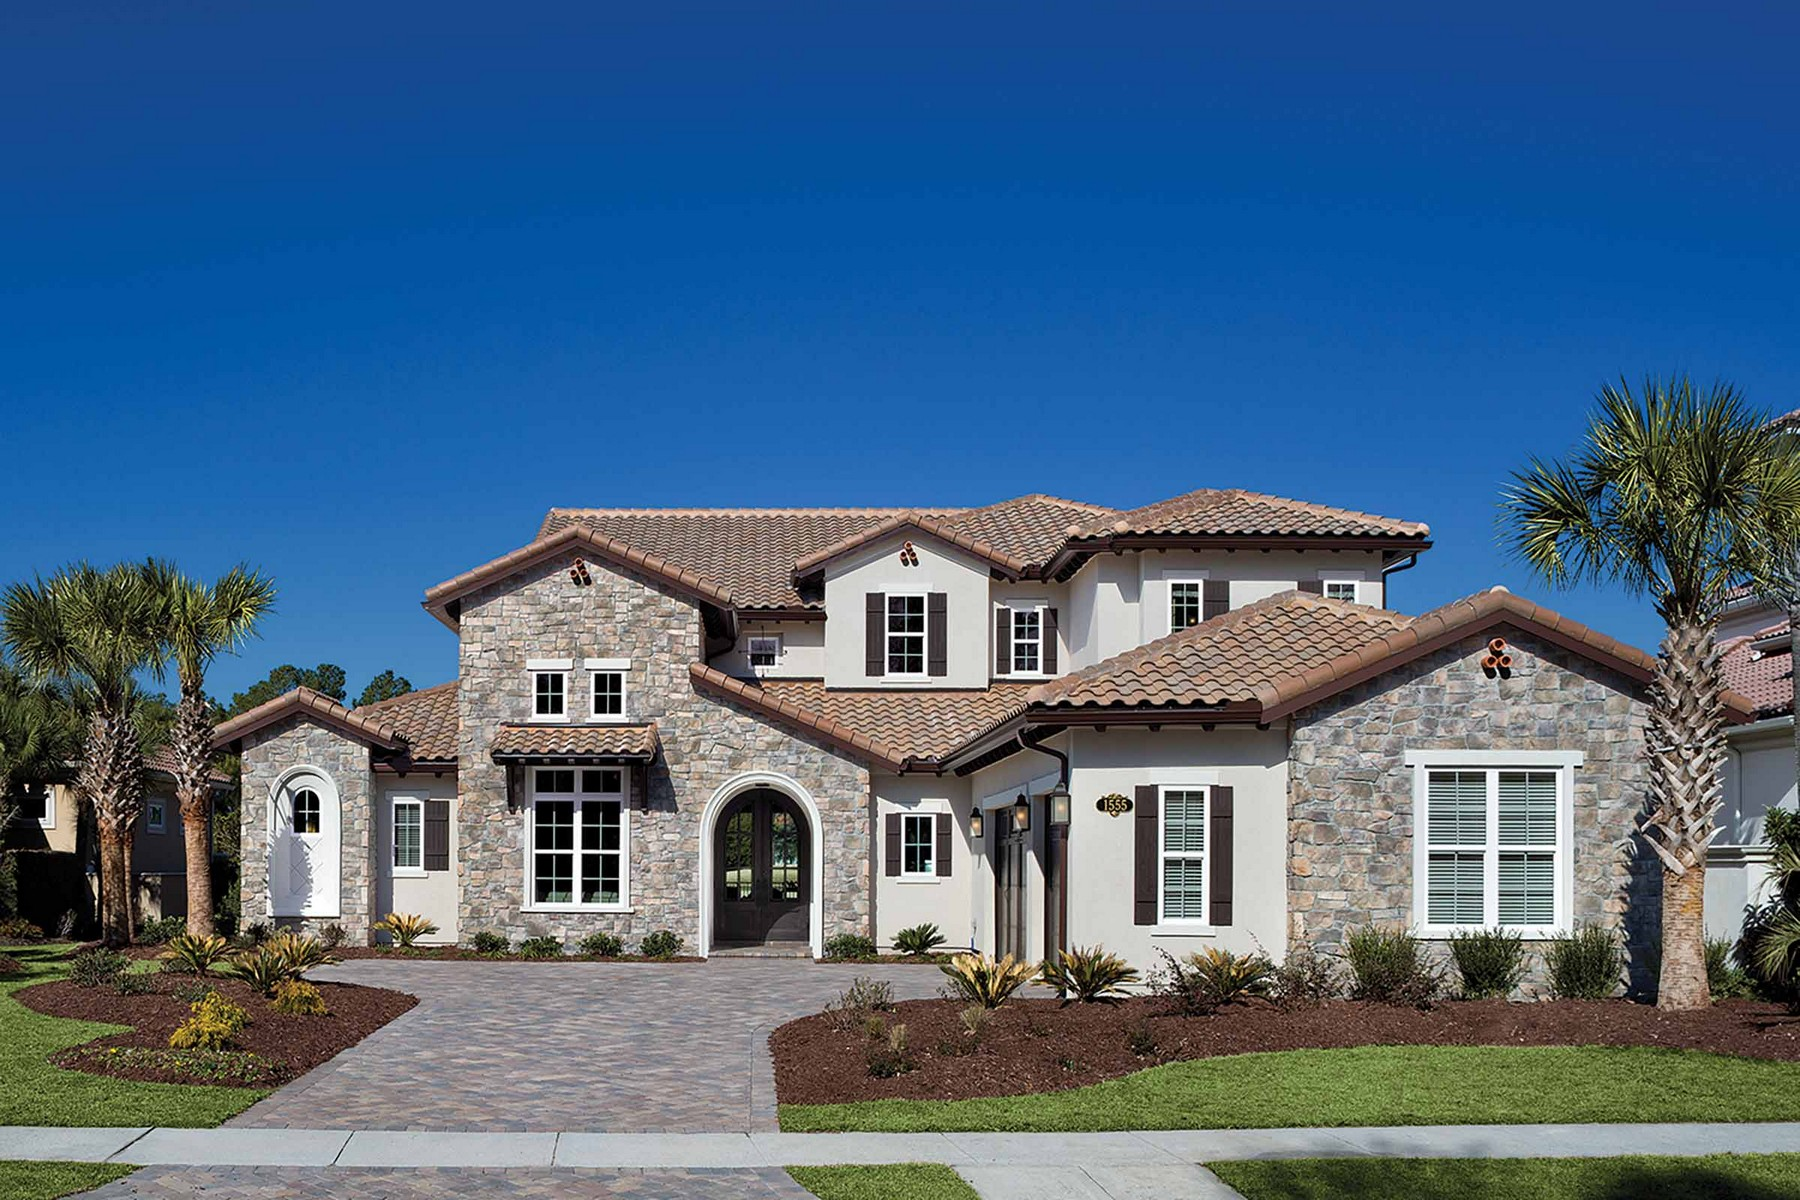 Casa Unifamiliar por un Venta en To Be Constructed Montalcino by Arthur Rutenberg Homes 1645 Riomar Cove Lane Vero Beach, Florida 32963 Estados Unidos